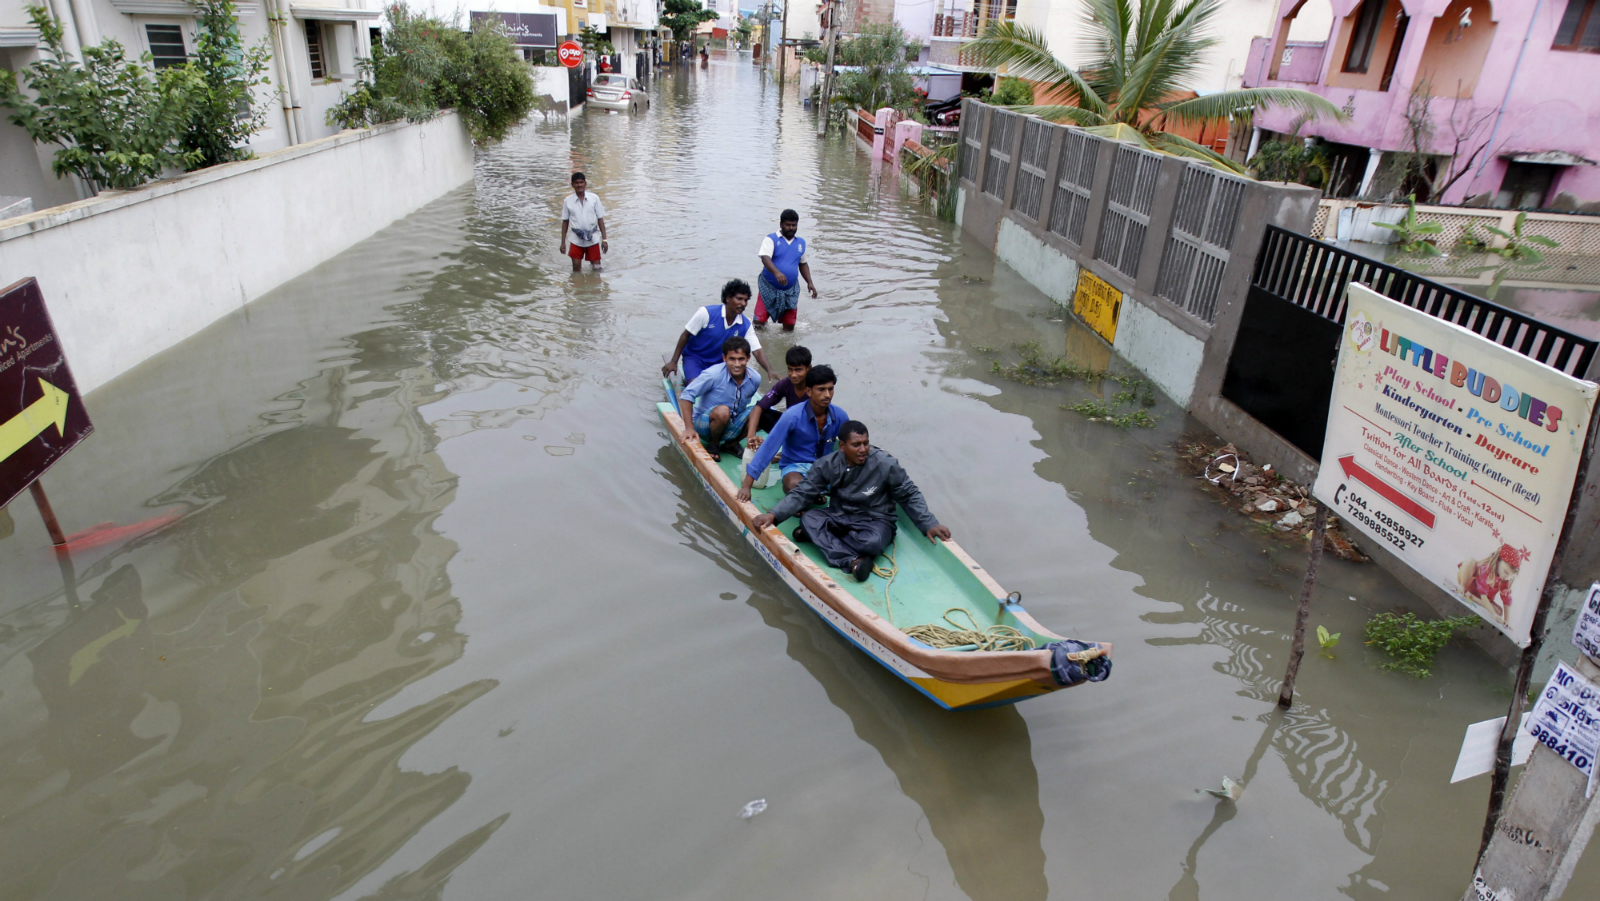 Rescue workers on a boat move people to safety at a residential area that was water-logged following heavy rains in Chennai, Tamil Nadu state, India, Monday, Nov.16, 2015. Incessant rains that lashed the city since Saturday night flooded several parts of Chennai. (AP Photo/Arun Sankar K)